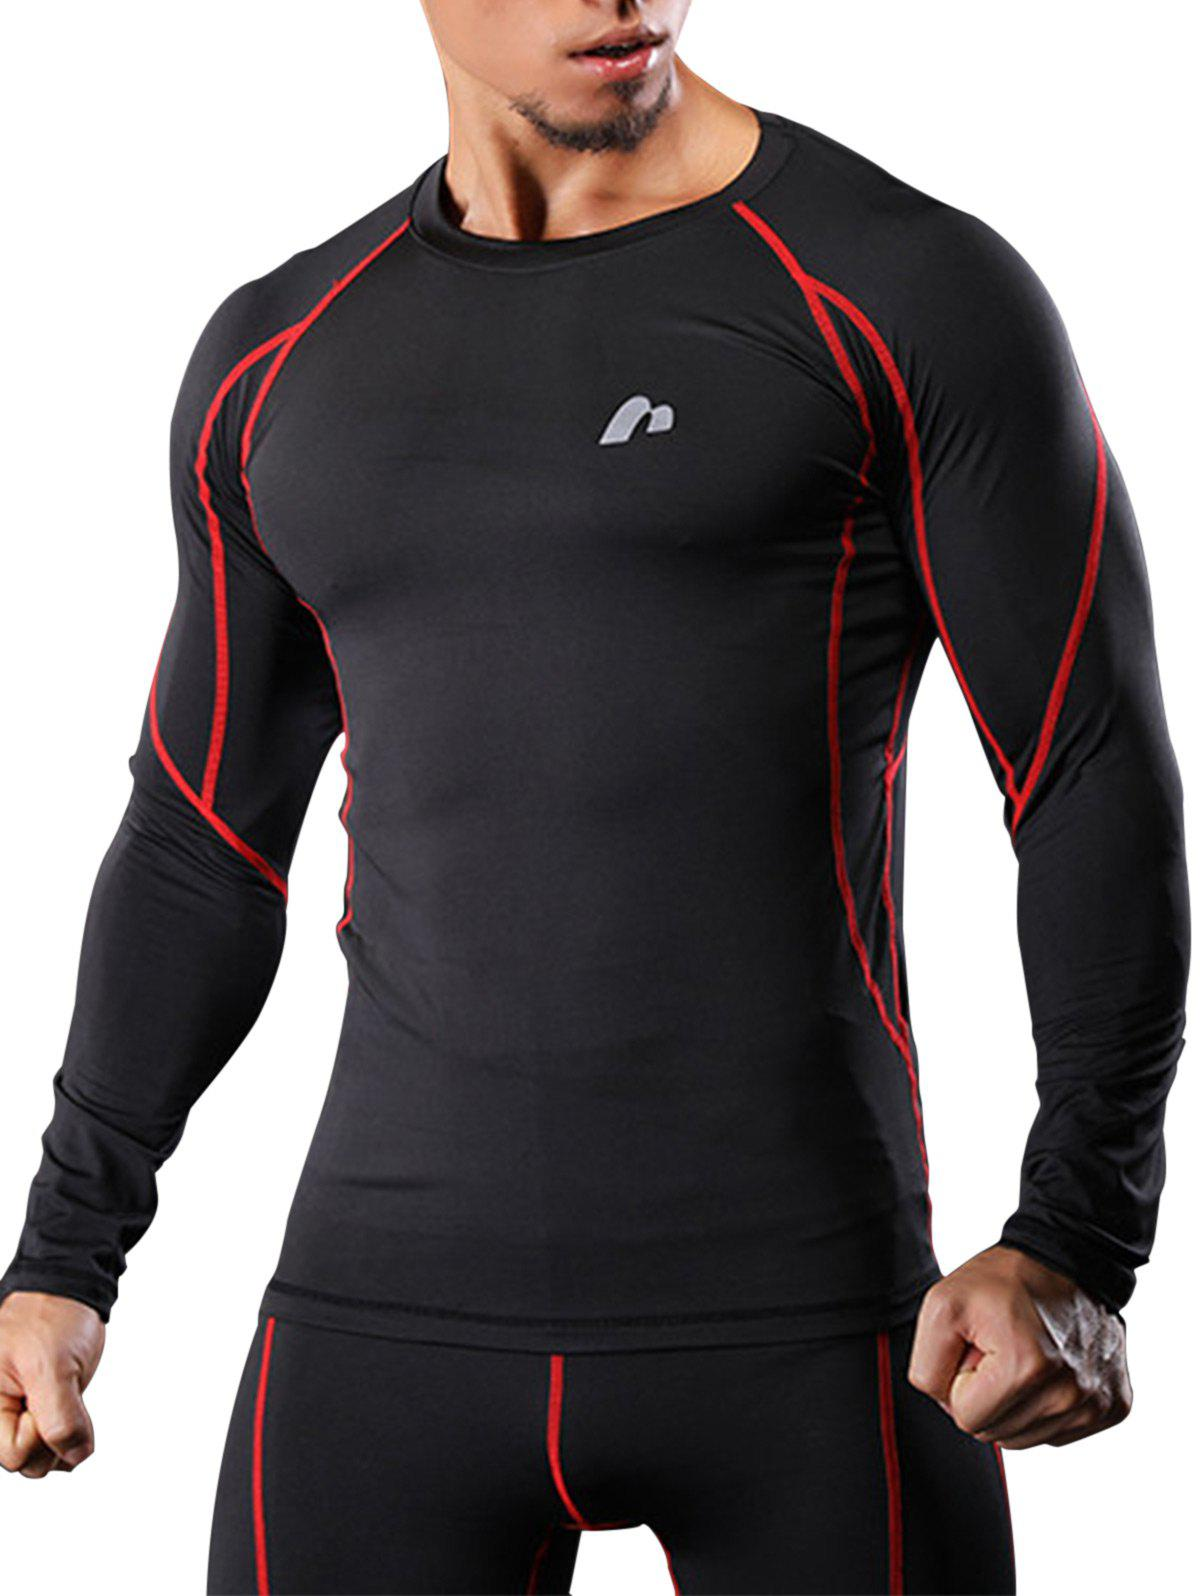 Raglan Sleeve Quick Dry Suture Stretchy Gym T-shirtMEN<br><br>Size: XL; Color: RED; Type: T-Shirt; Material: Polyester,Spandex; Pattern Type: Print; Weight: 0.2100kg; Package Contents: 1 x T-shirt;